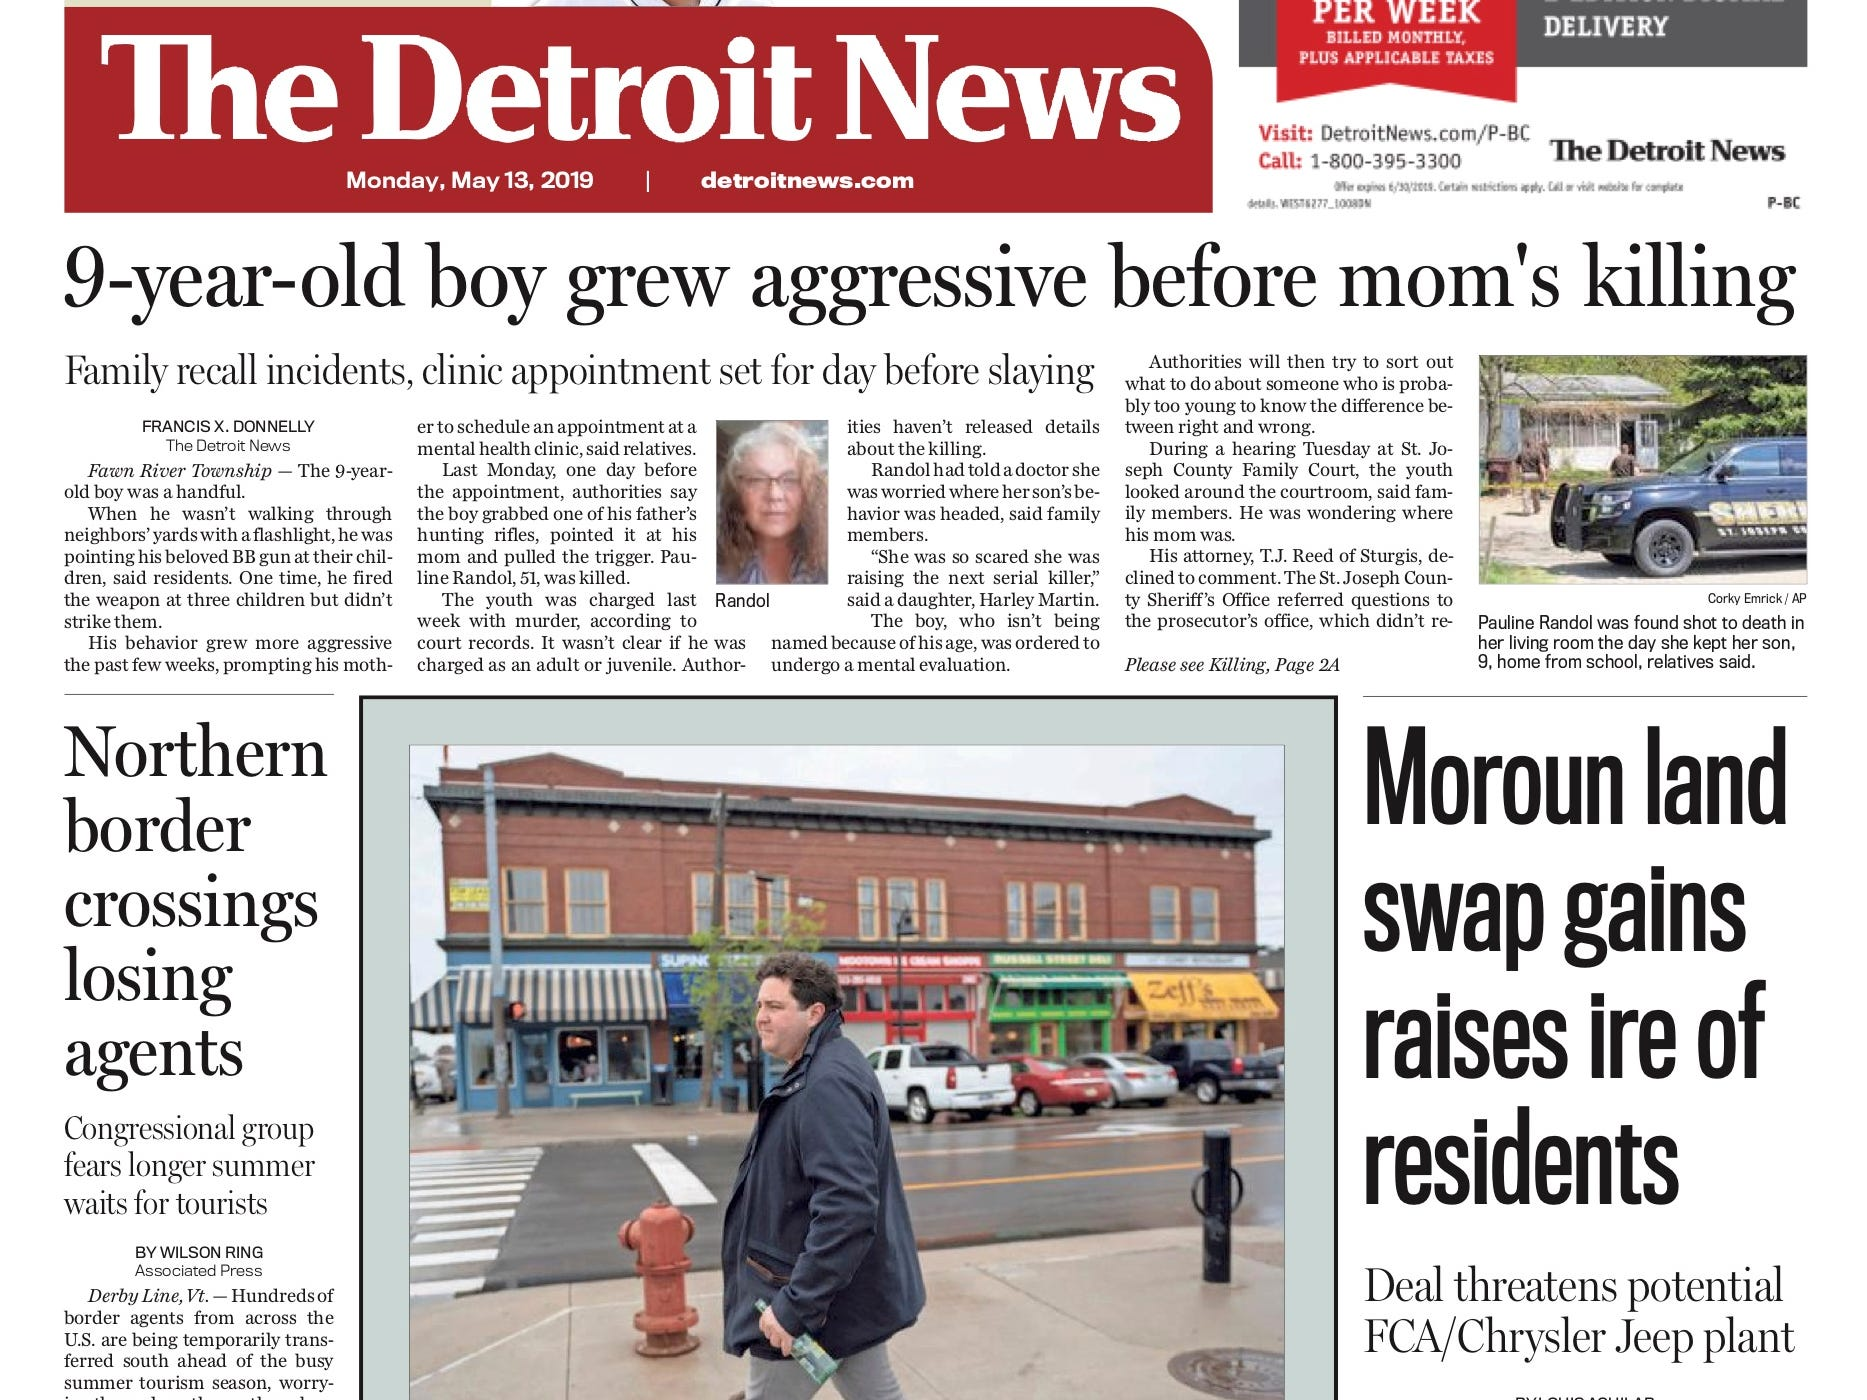 The front page of the Detroit News on May 13, 2019.